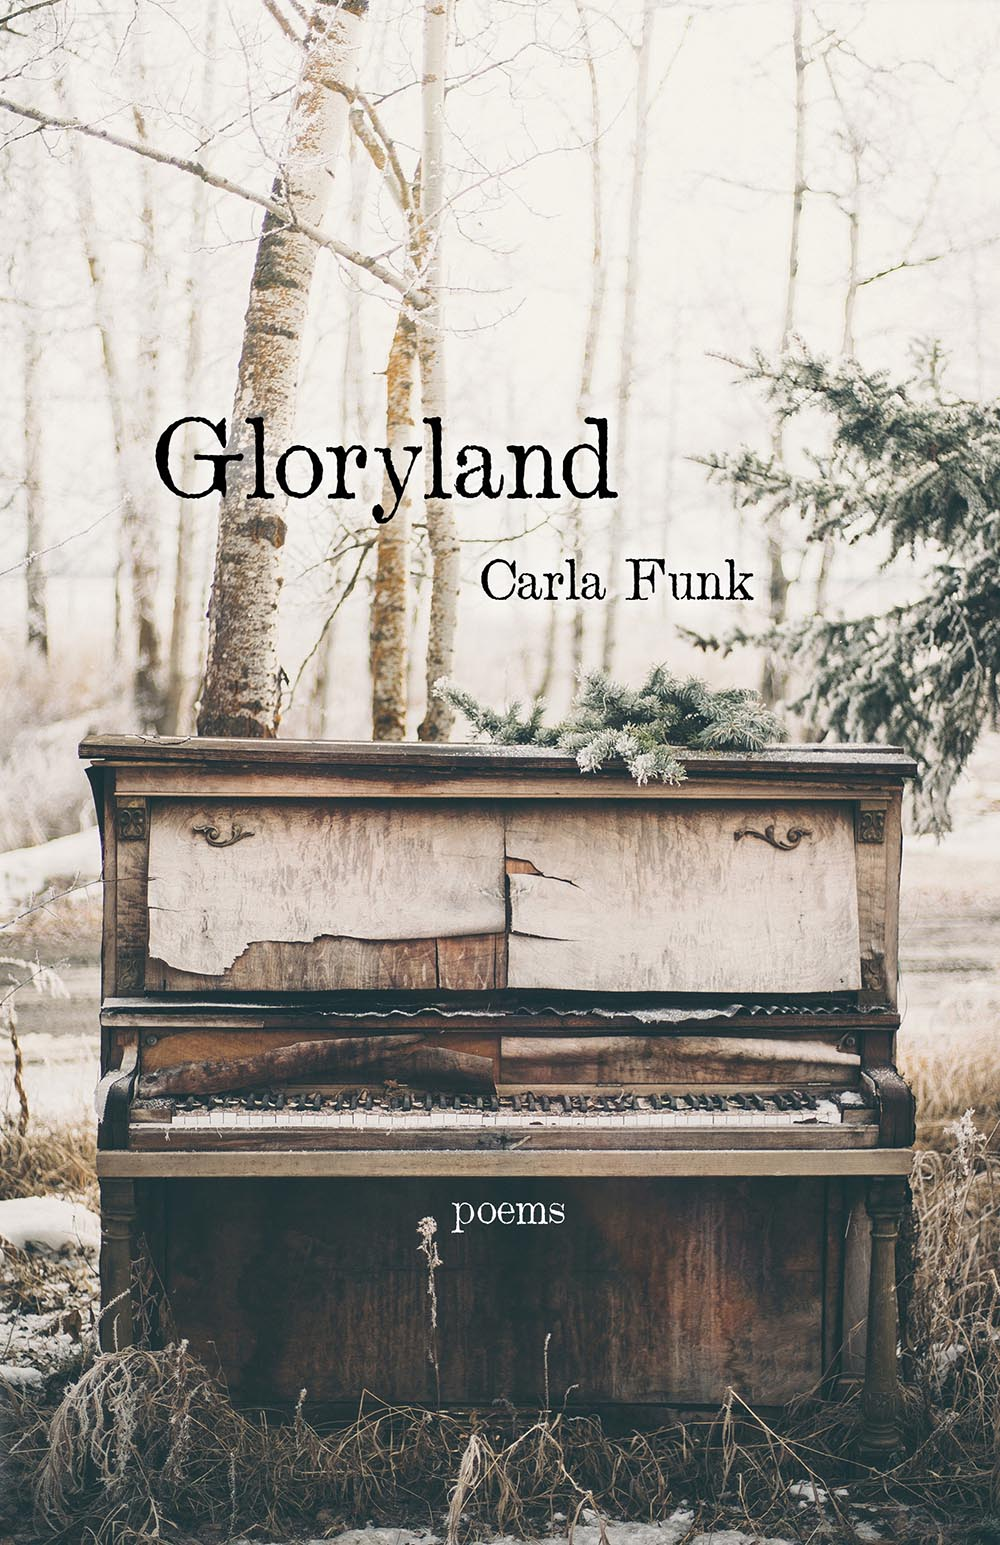 Gloryland by Carla Funk